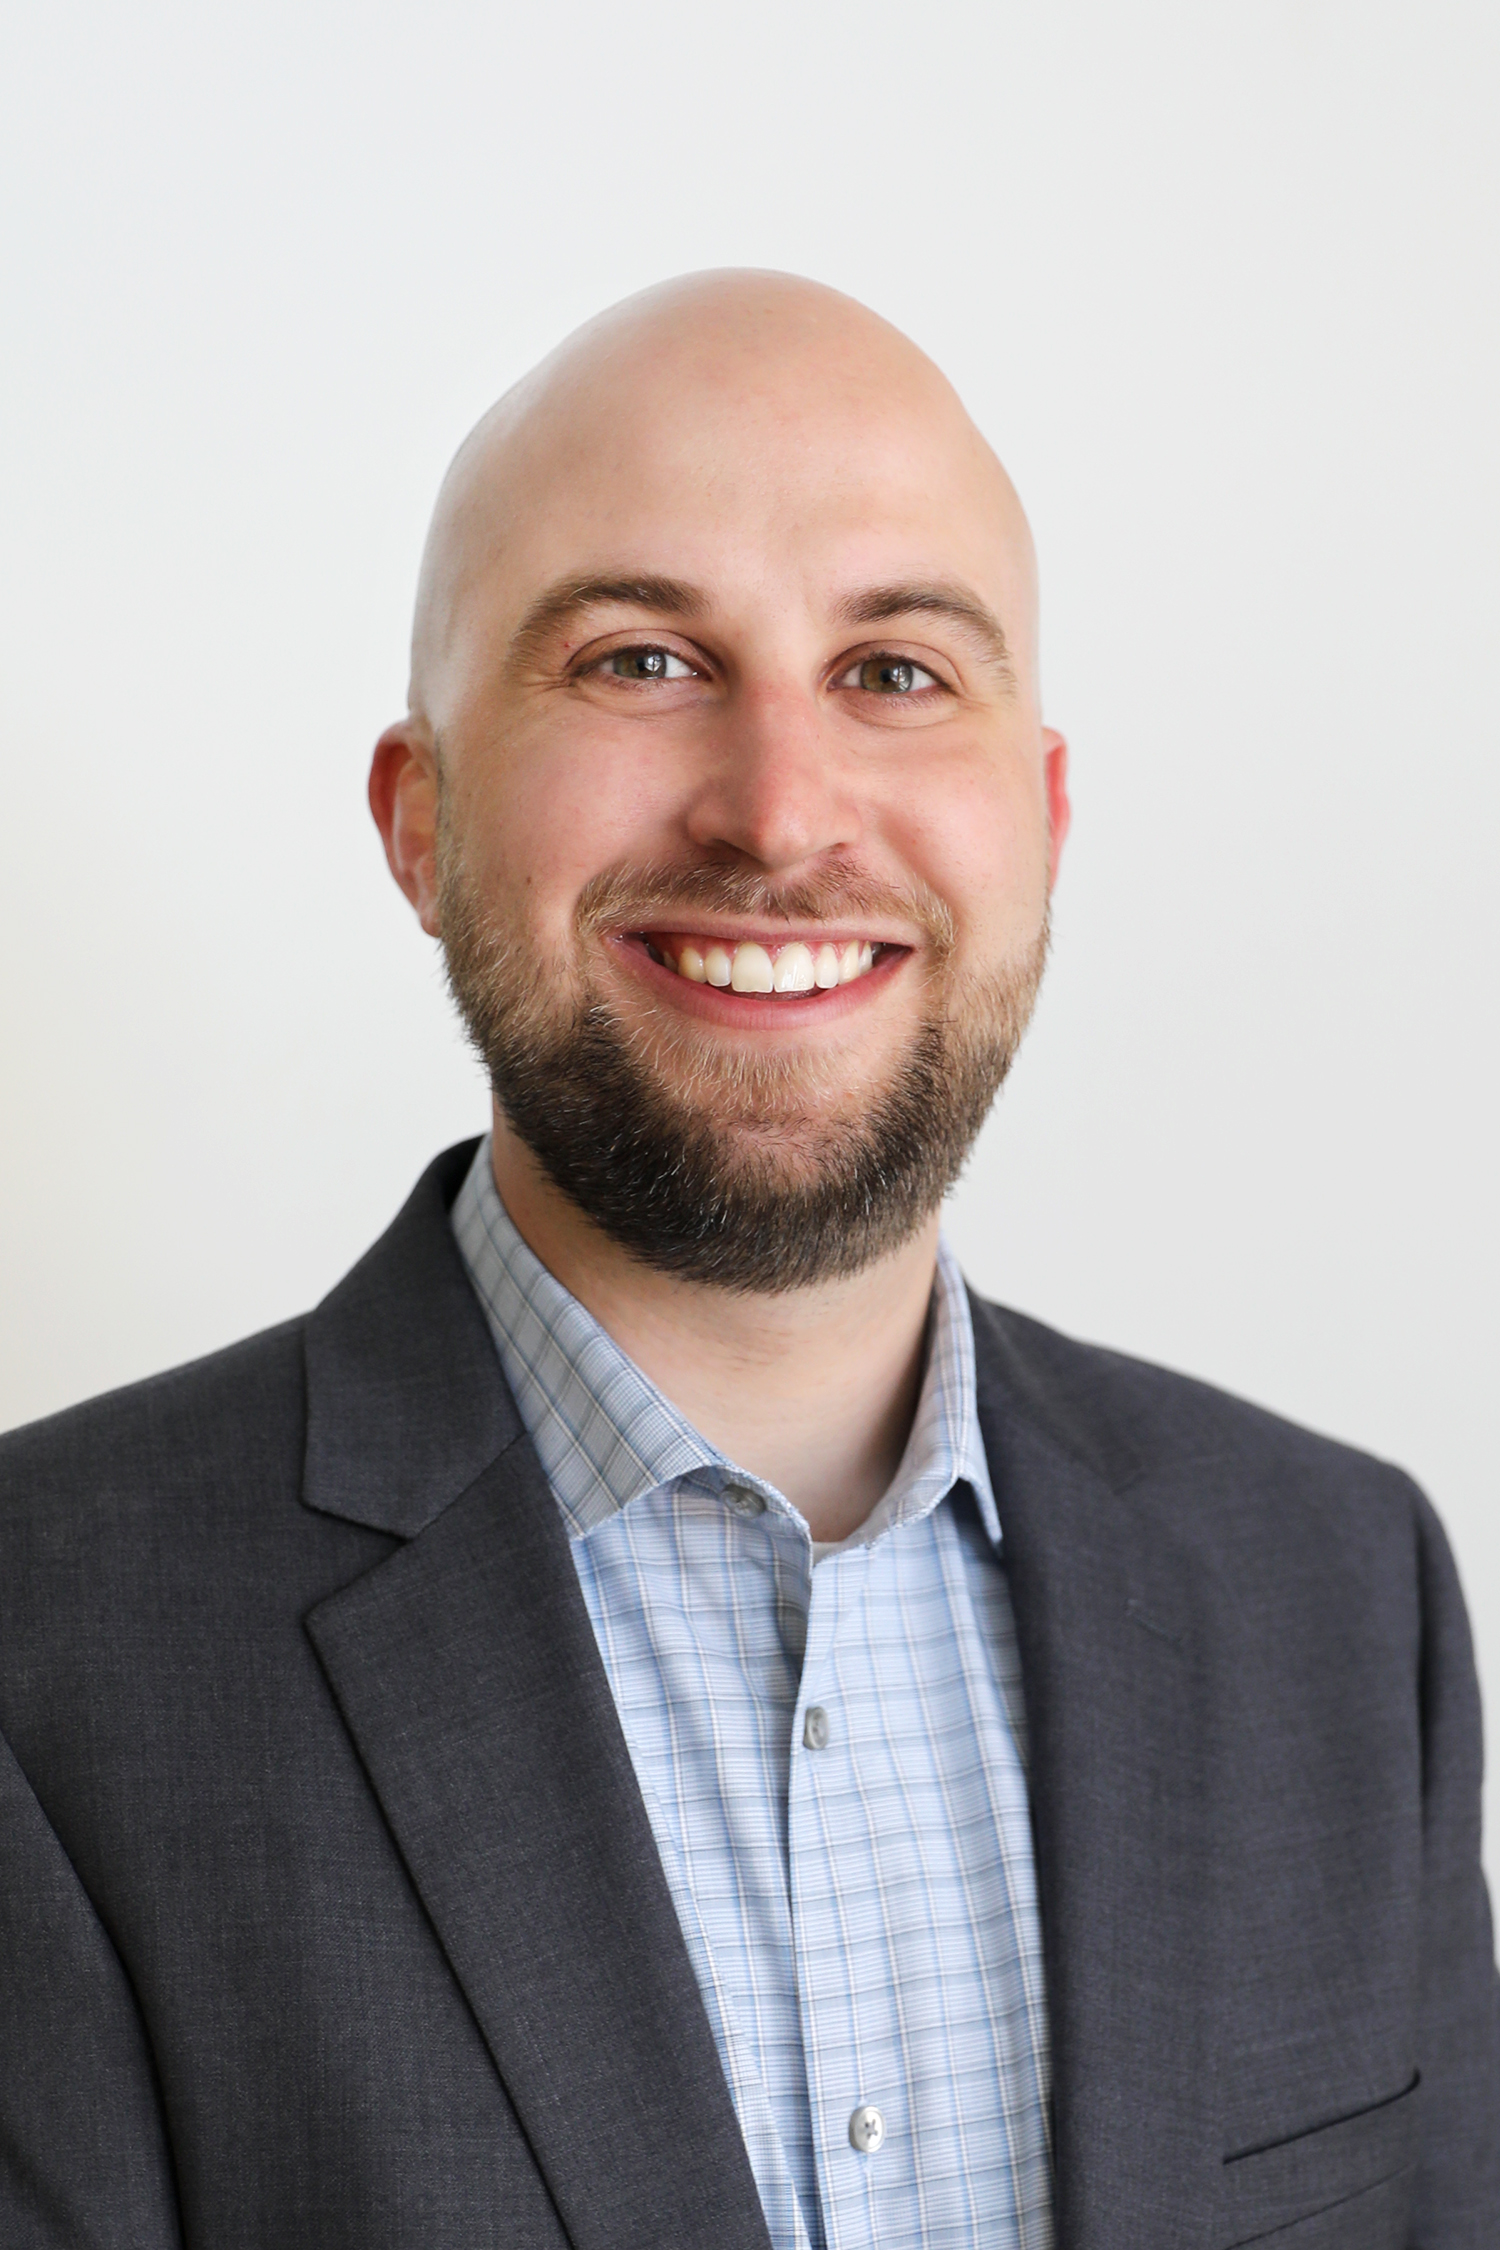 VISIT Milwaukee welcomes new Convention Services Manager Andrew Knuth